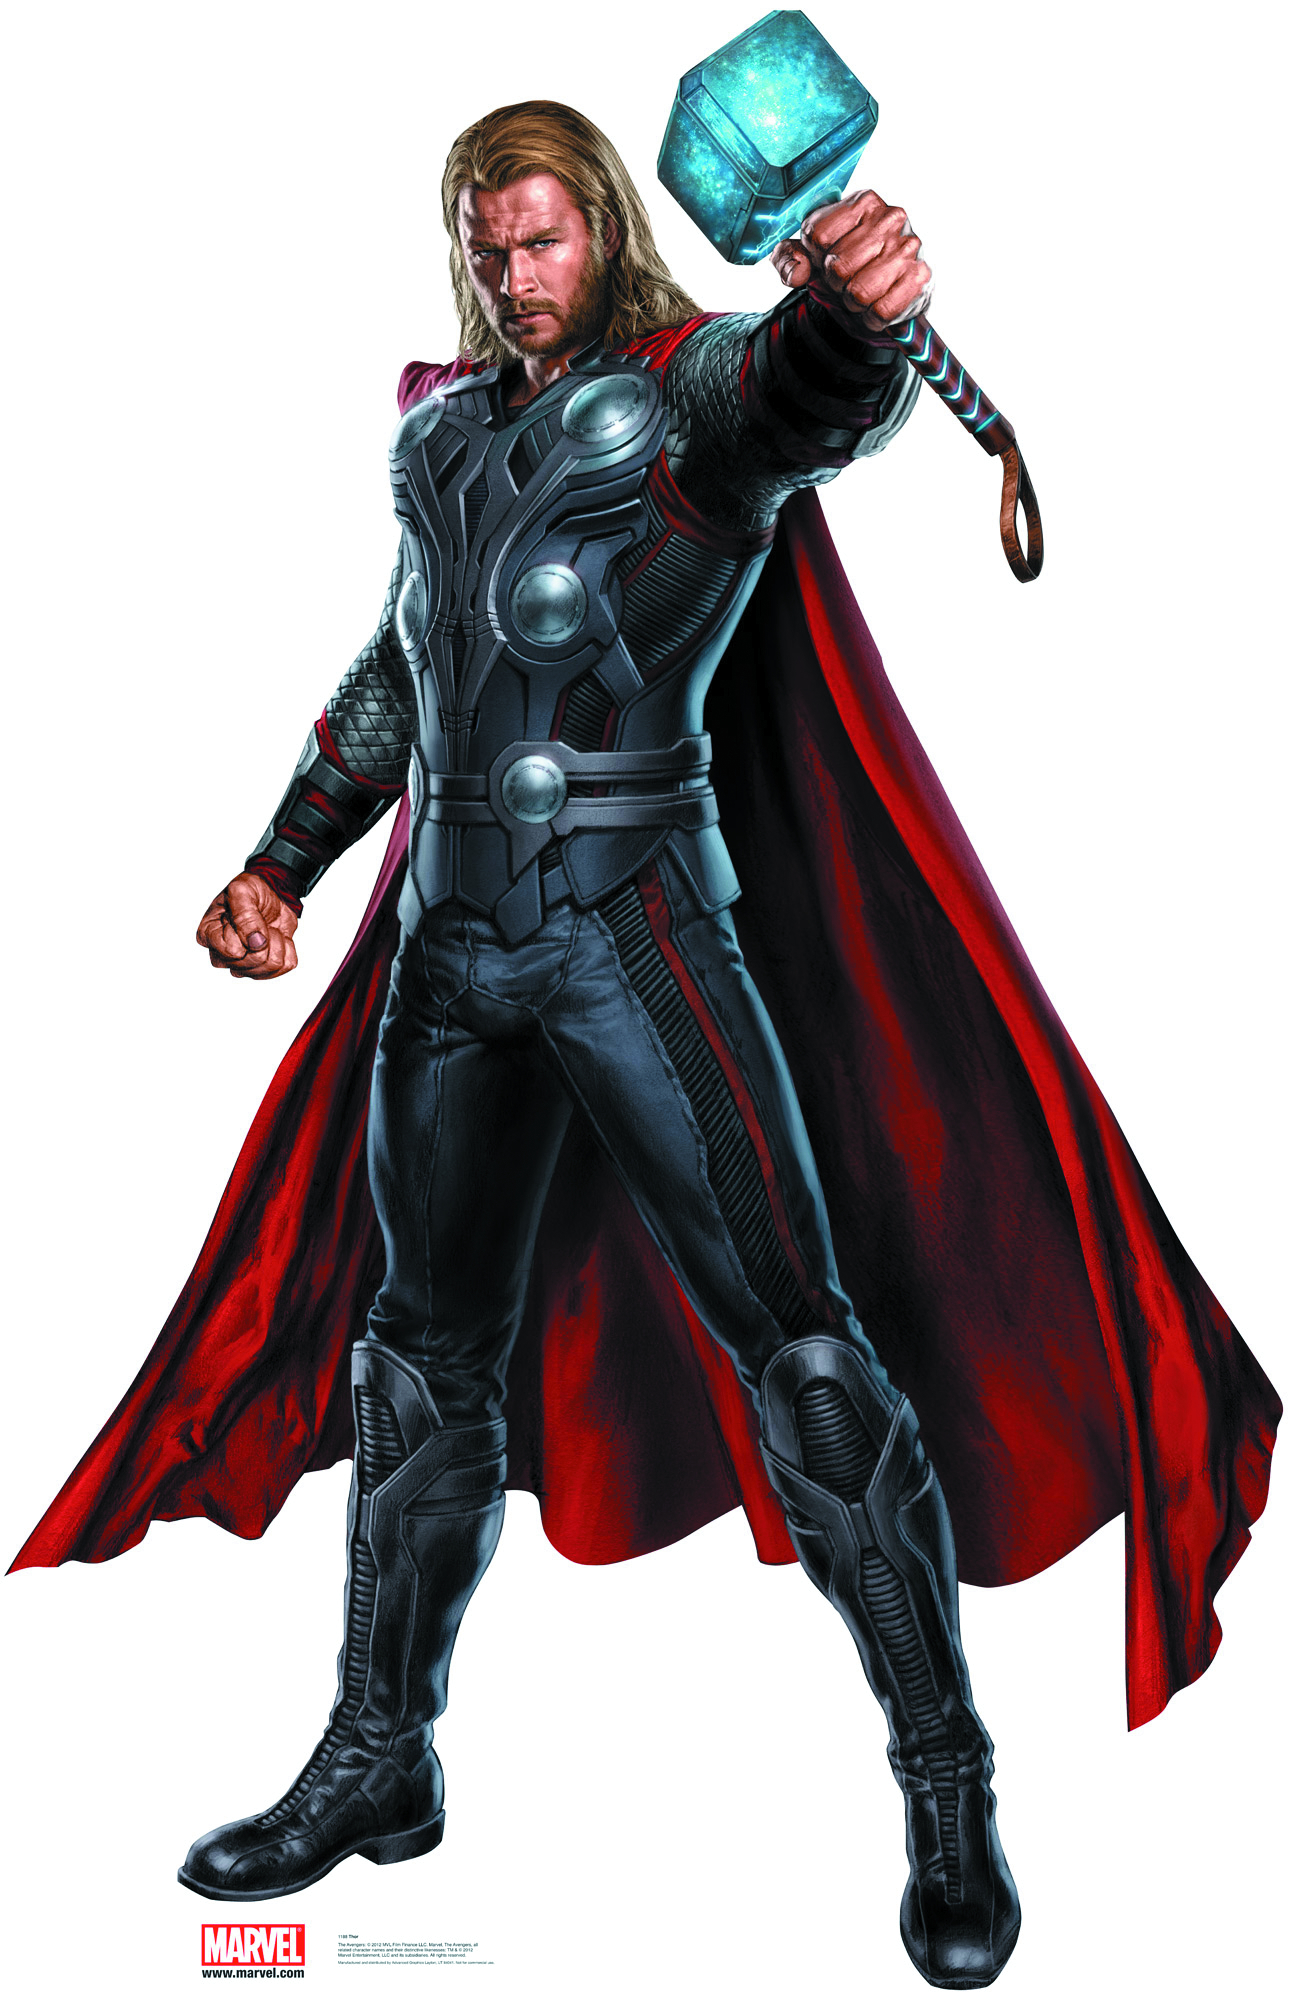 APR121900 - AVENGERS MOVIE THOR LIFE-SIZE STANDUP ...